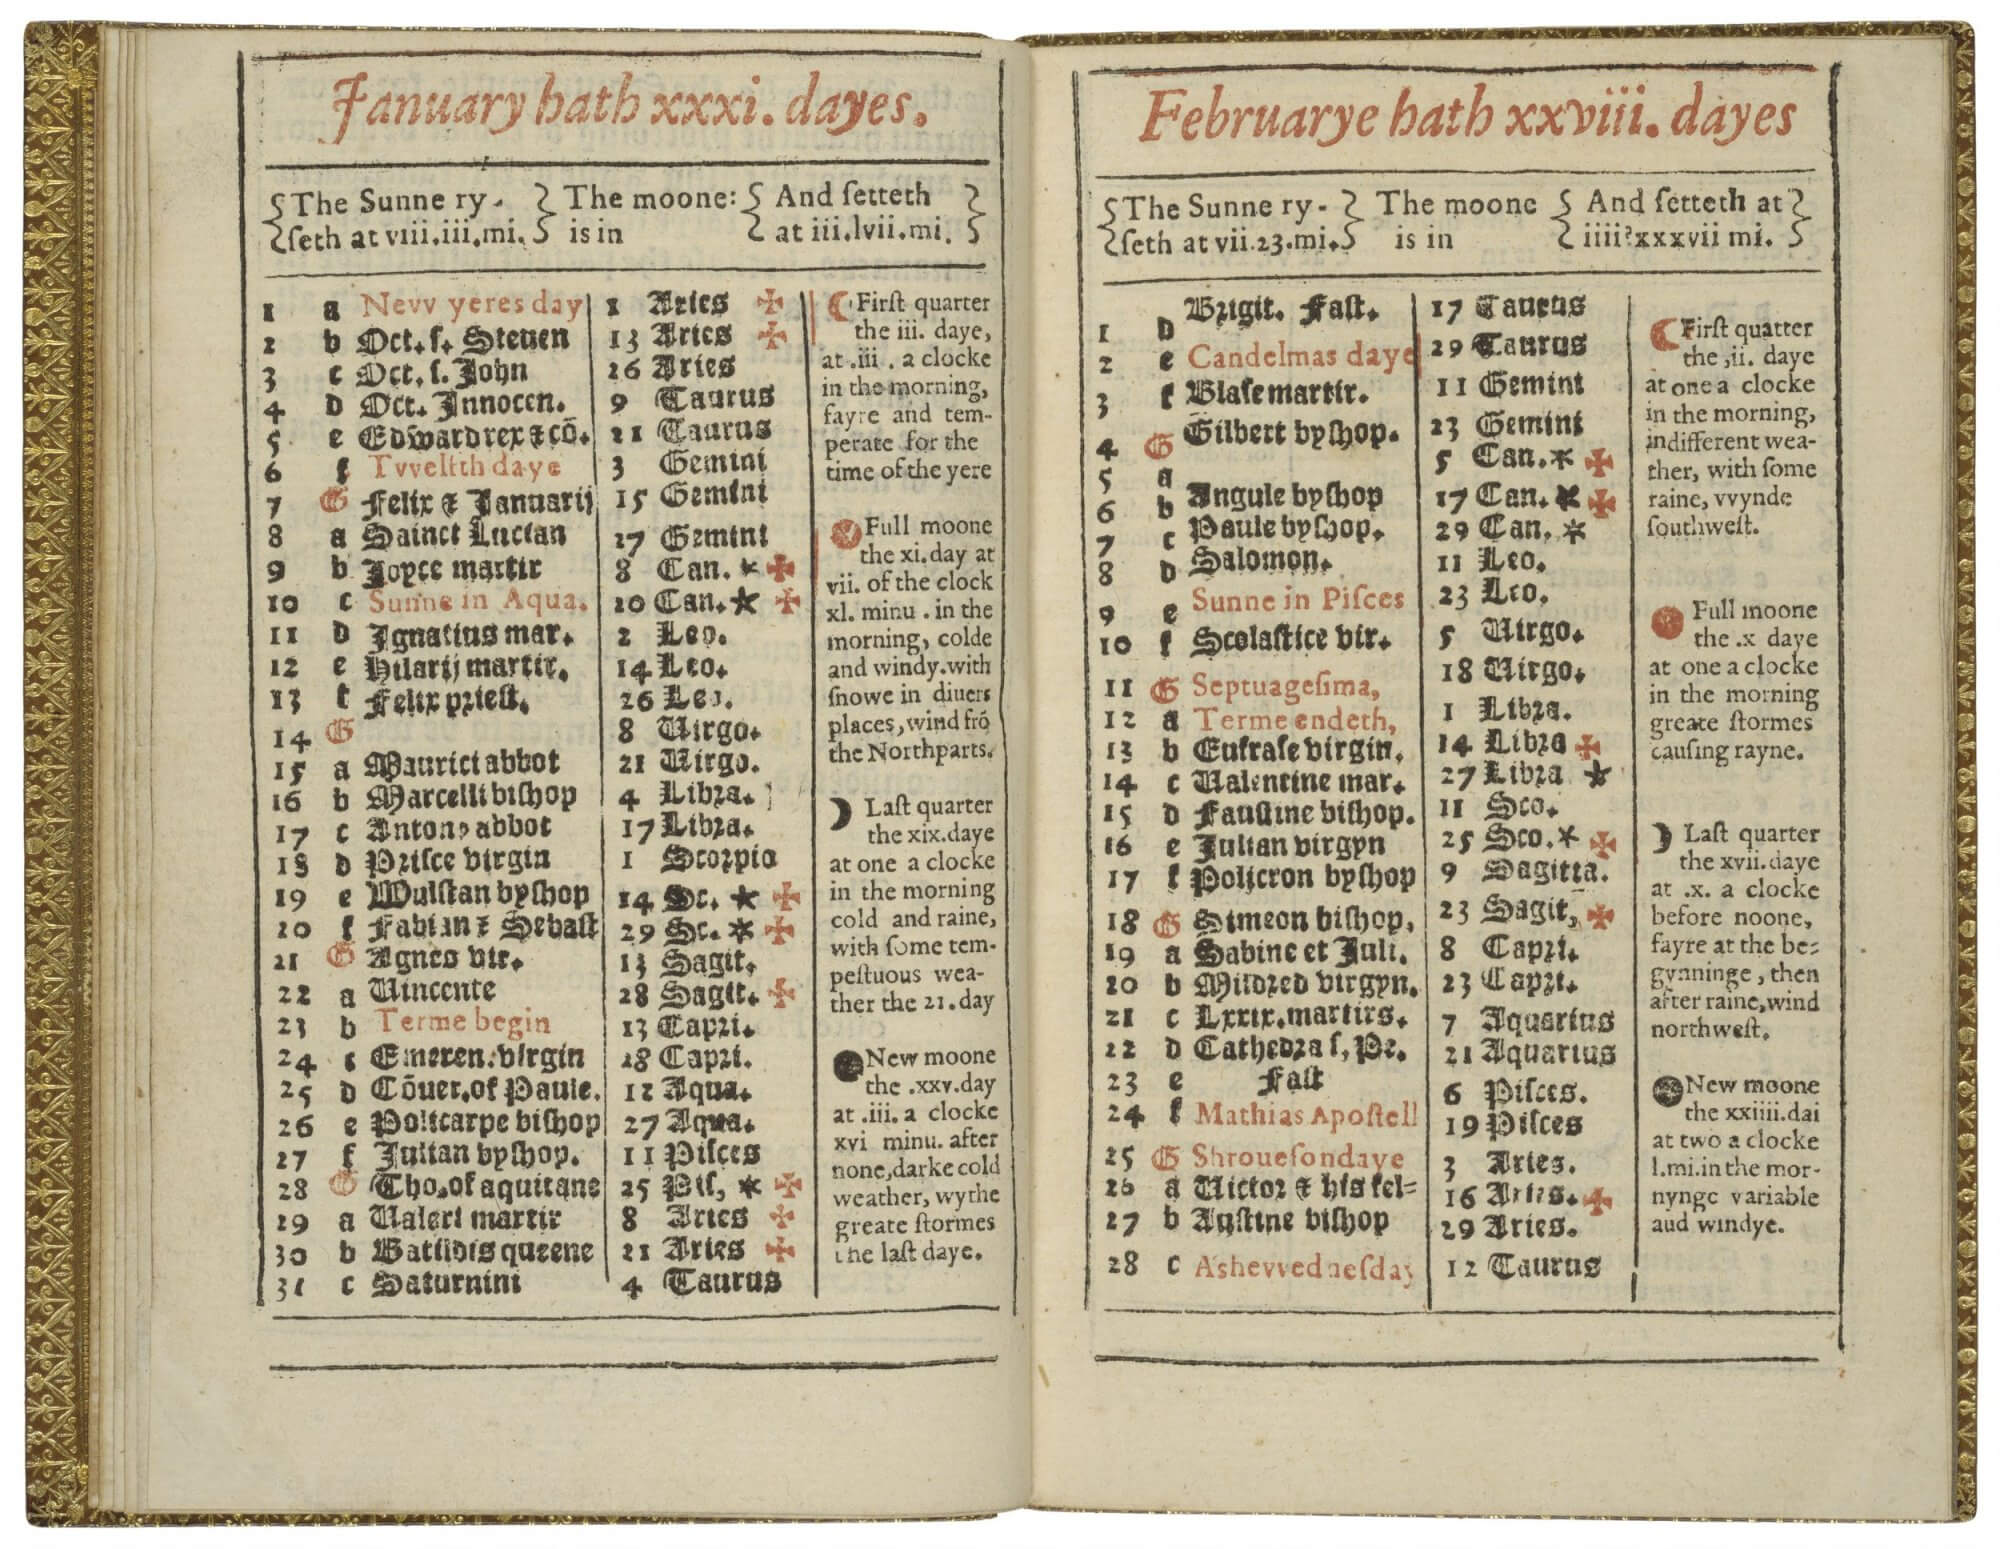 This almanac prints the months on individual pages rather than a two-page opening, as become more common in later decades, but a lot of information about astrological bodies and calendar dates is still fit in across the columns.